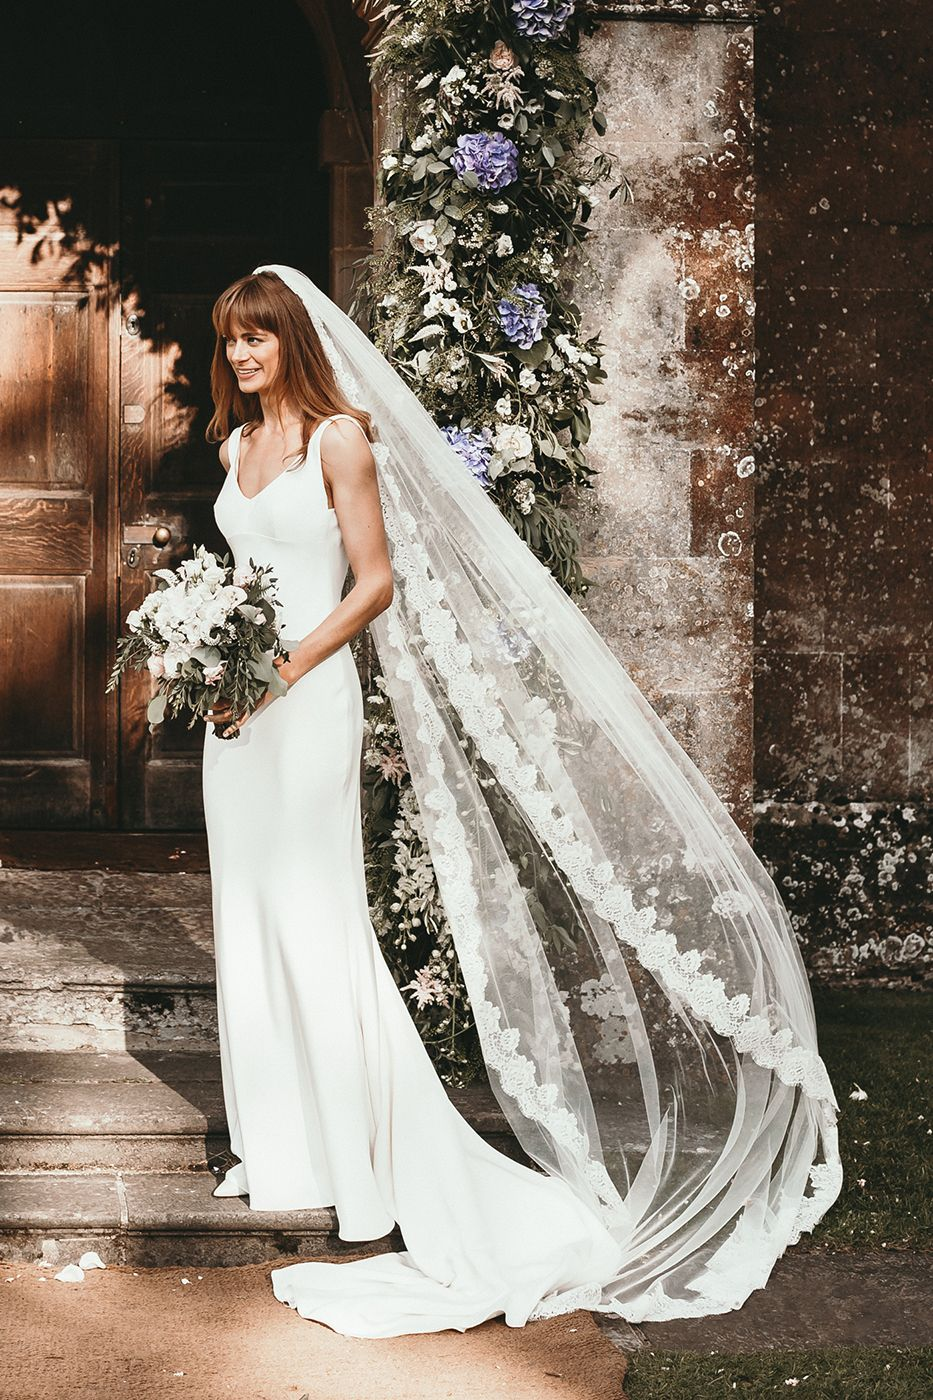 Couture Dress by Mirror Mirror London - Babington House Somerset For An Elegant Wedding With Bride In Couture Gown By Mirror Mirror London & Images by Benjamin Wheeler